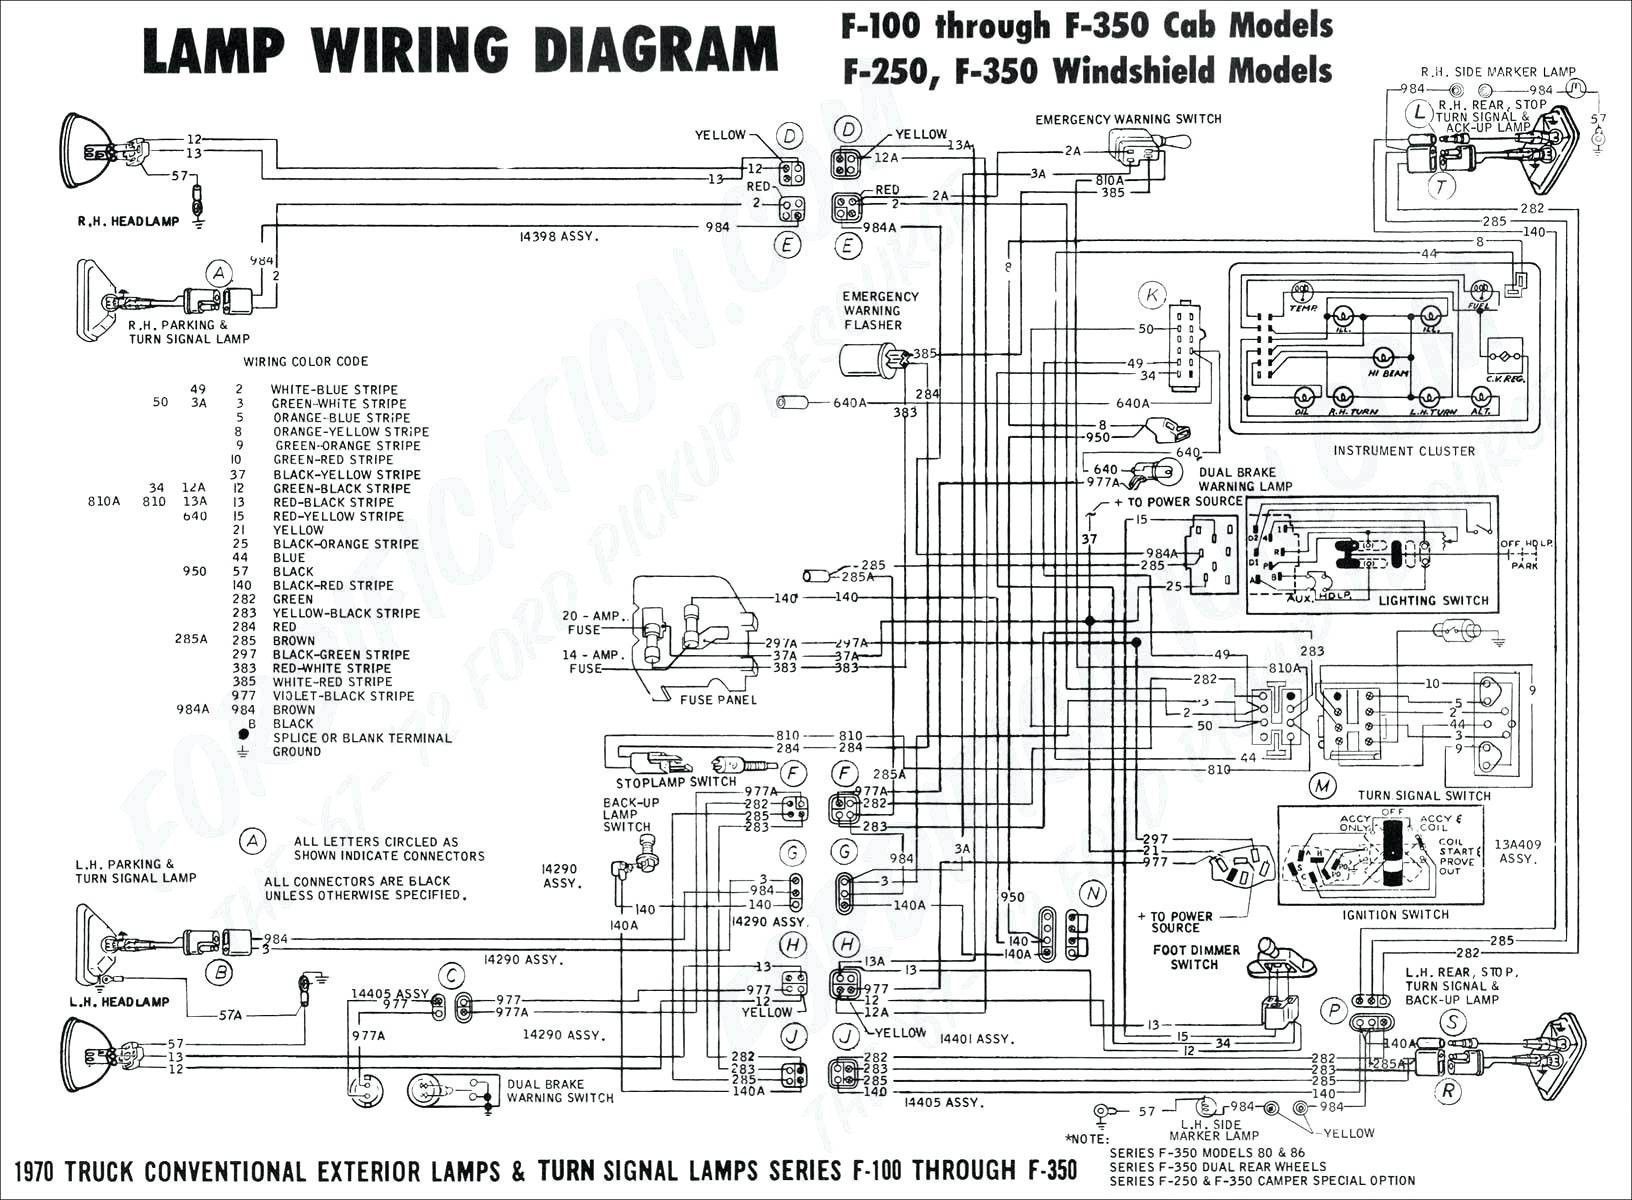 2004 Chevy Tail Light Electrical Diagram In 2020 Electrical Diagram Trailer Wiring Diagram Electrical Wiring Diagram